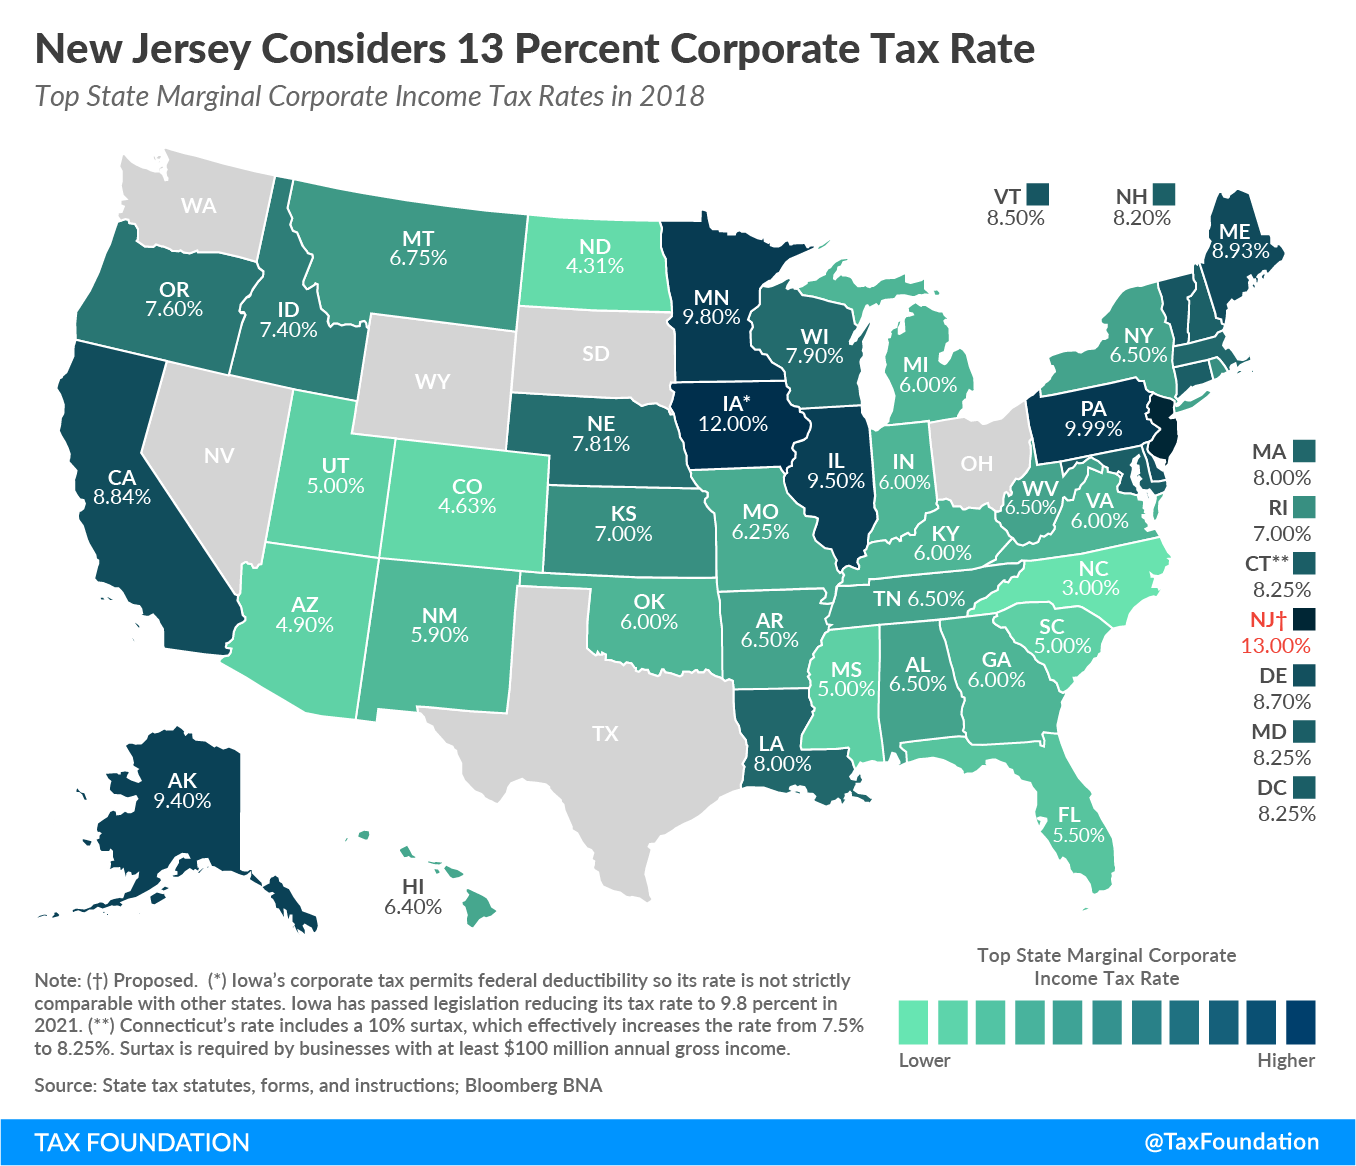 New Jersey Corporate Tax Rate 13%